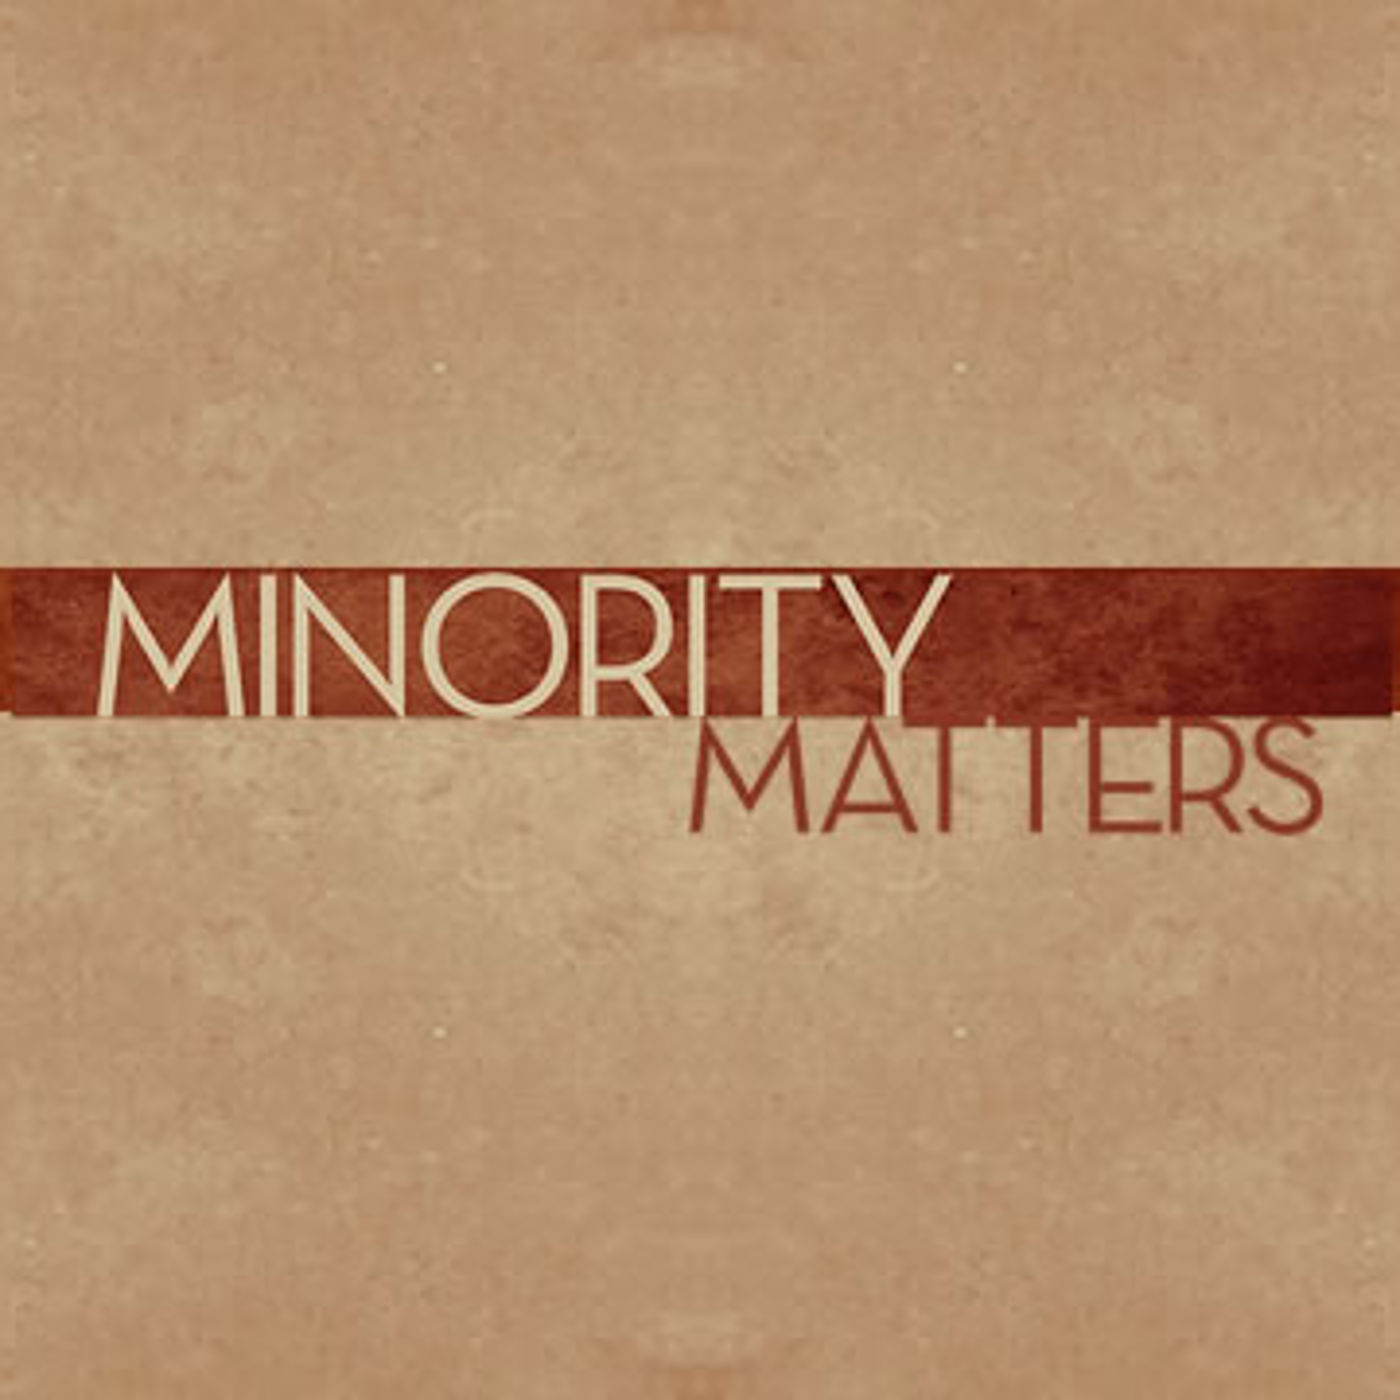 Minority Matters Graphic